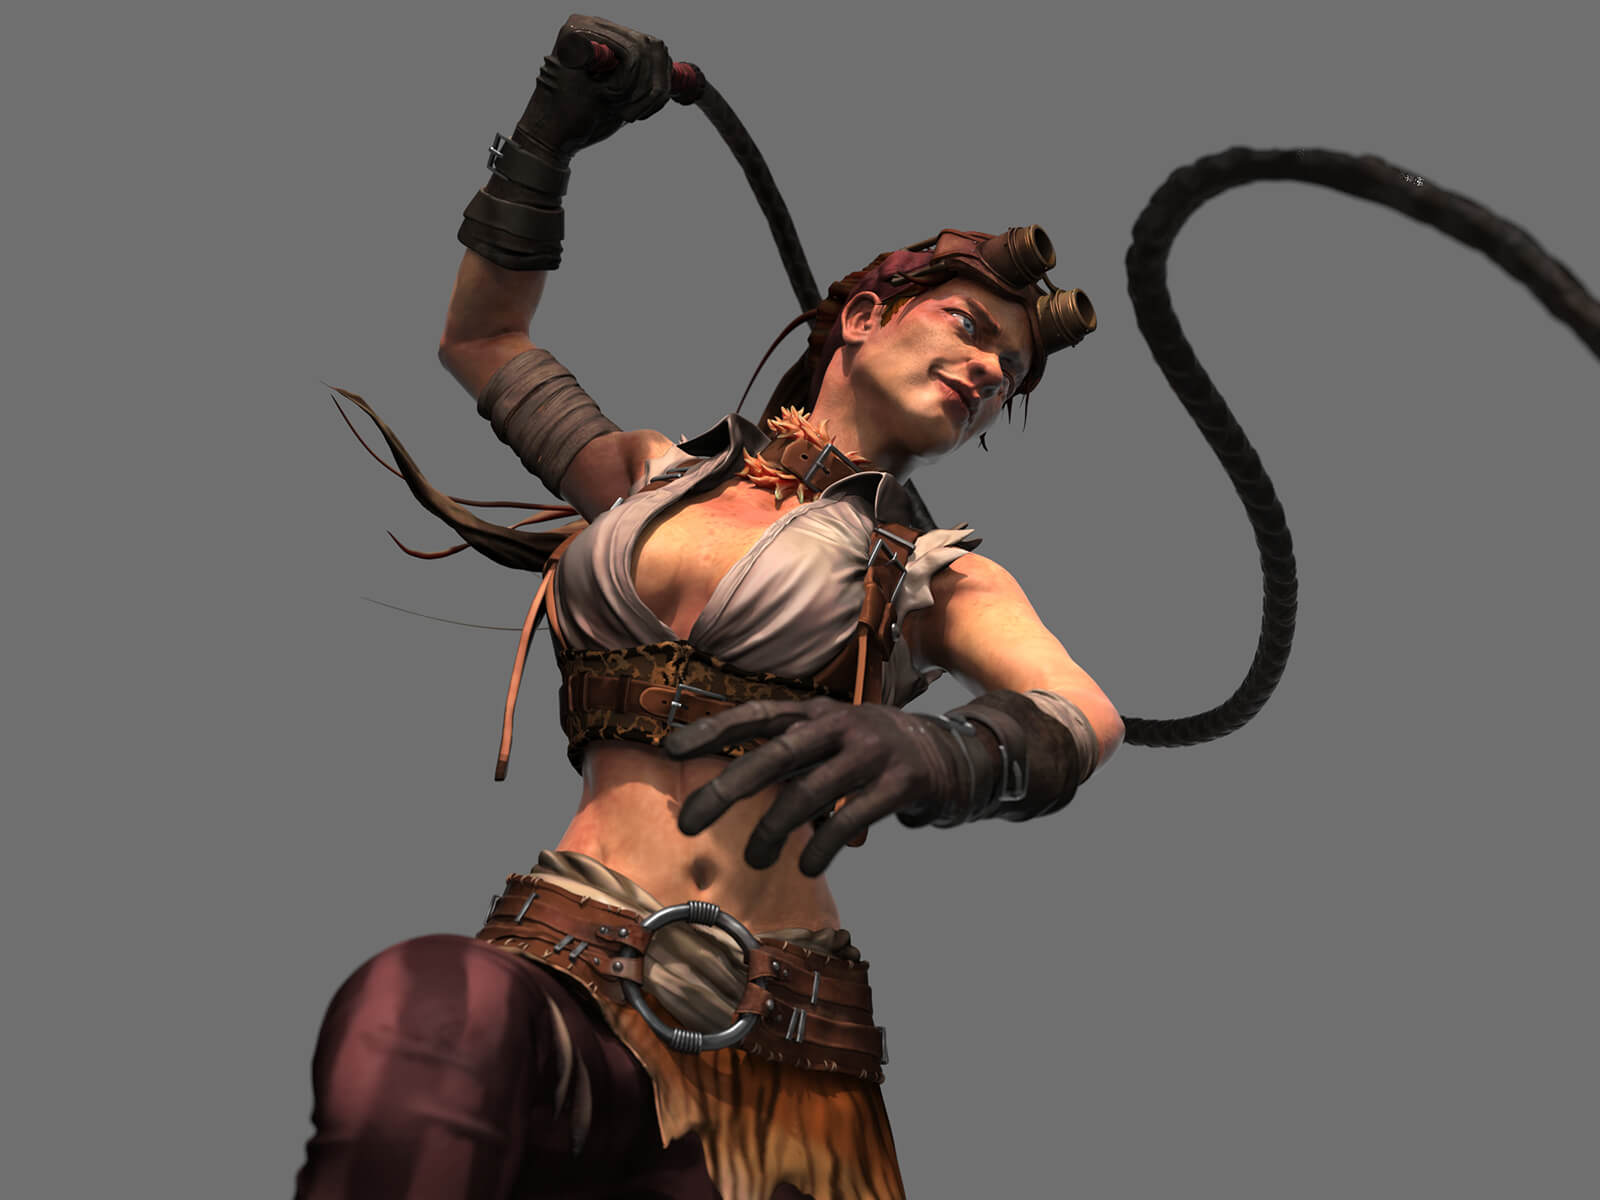 A woman wearing goggles and gloves, brandishing a whip